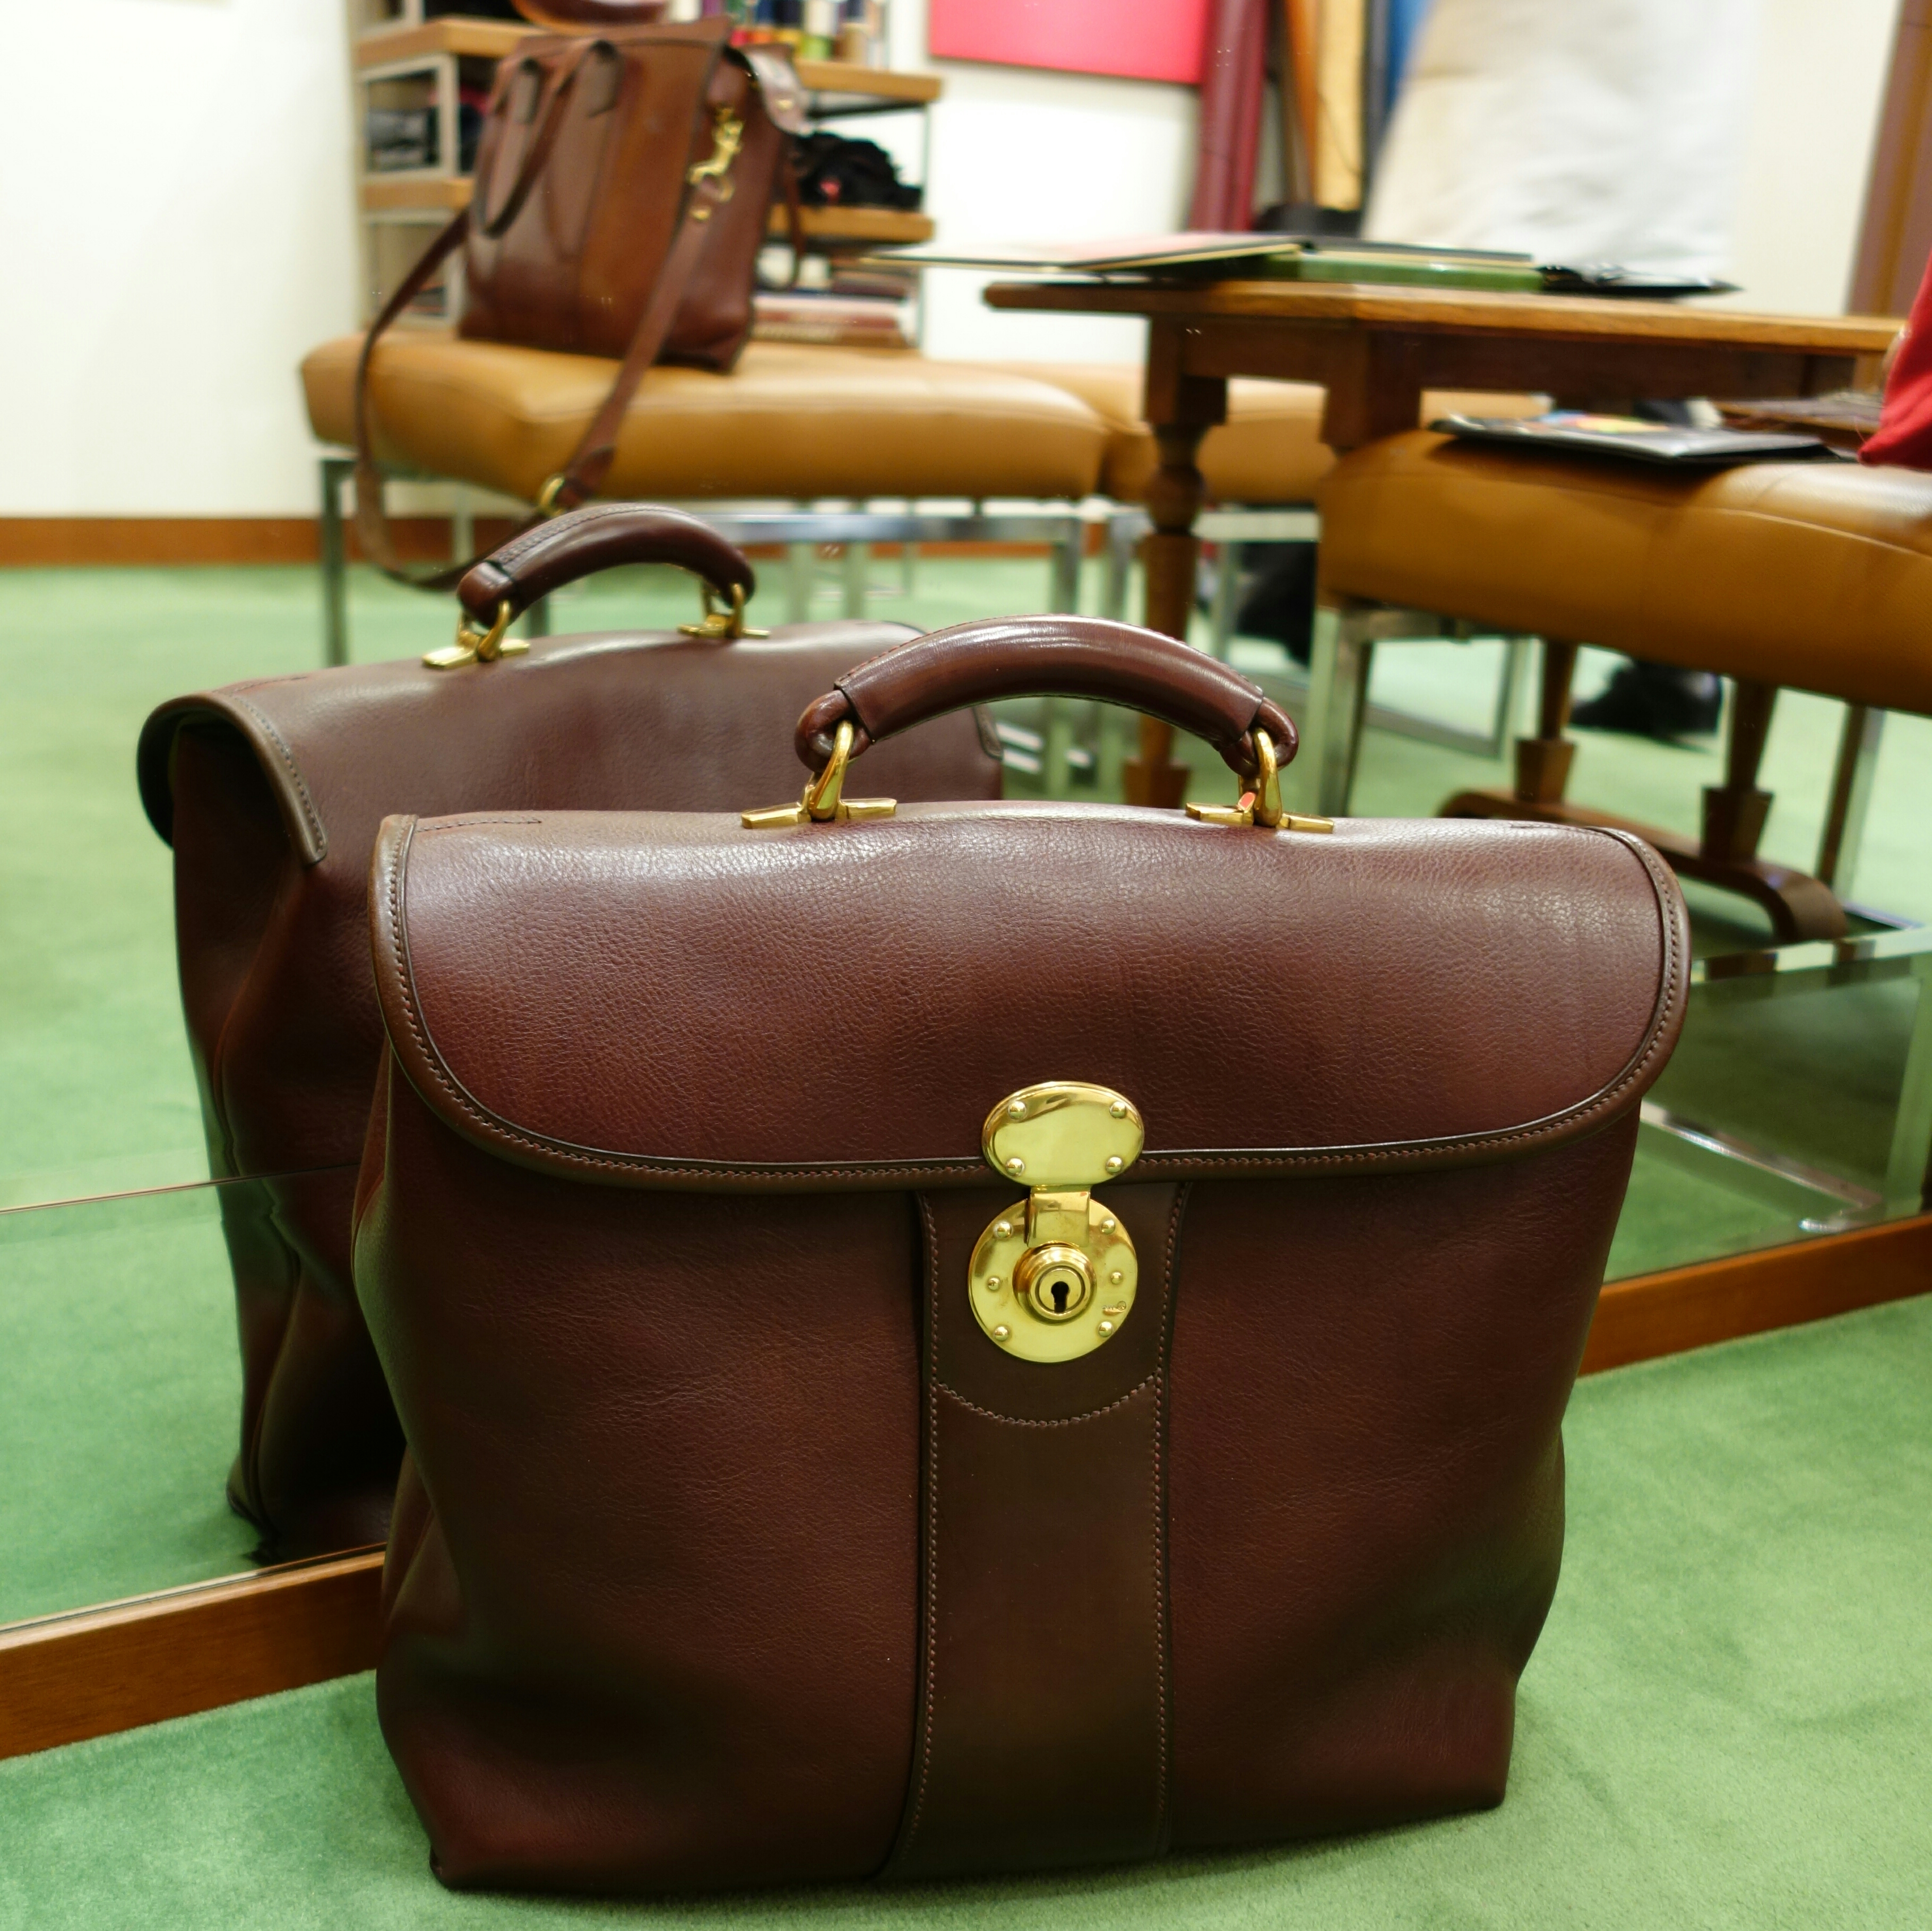 Stefan88's photos in Japanese Leather Goods/Accessories